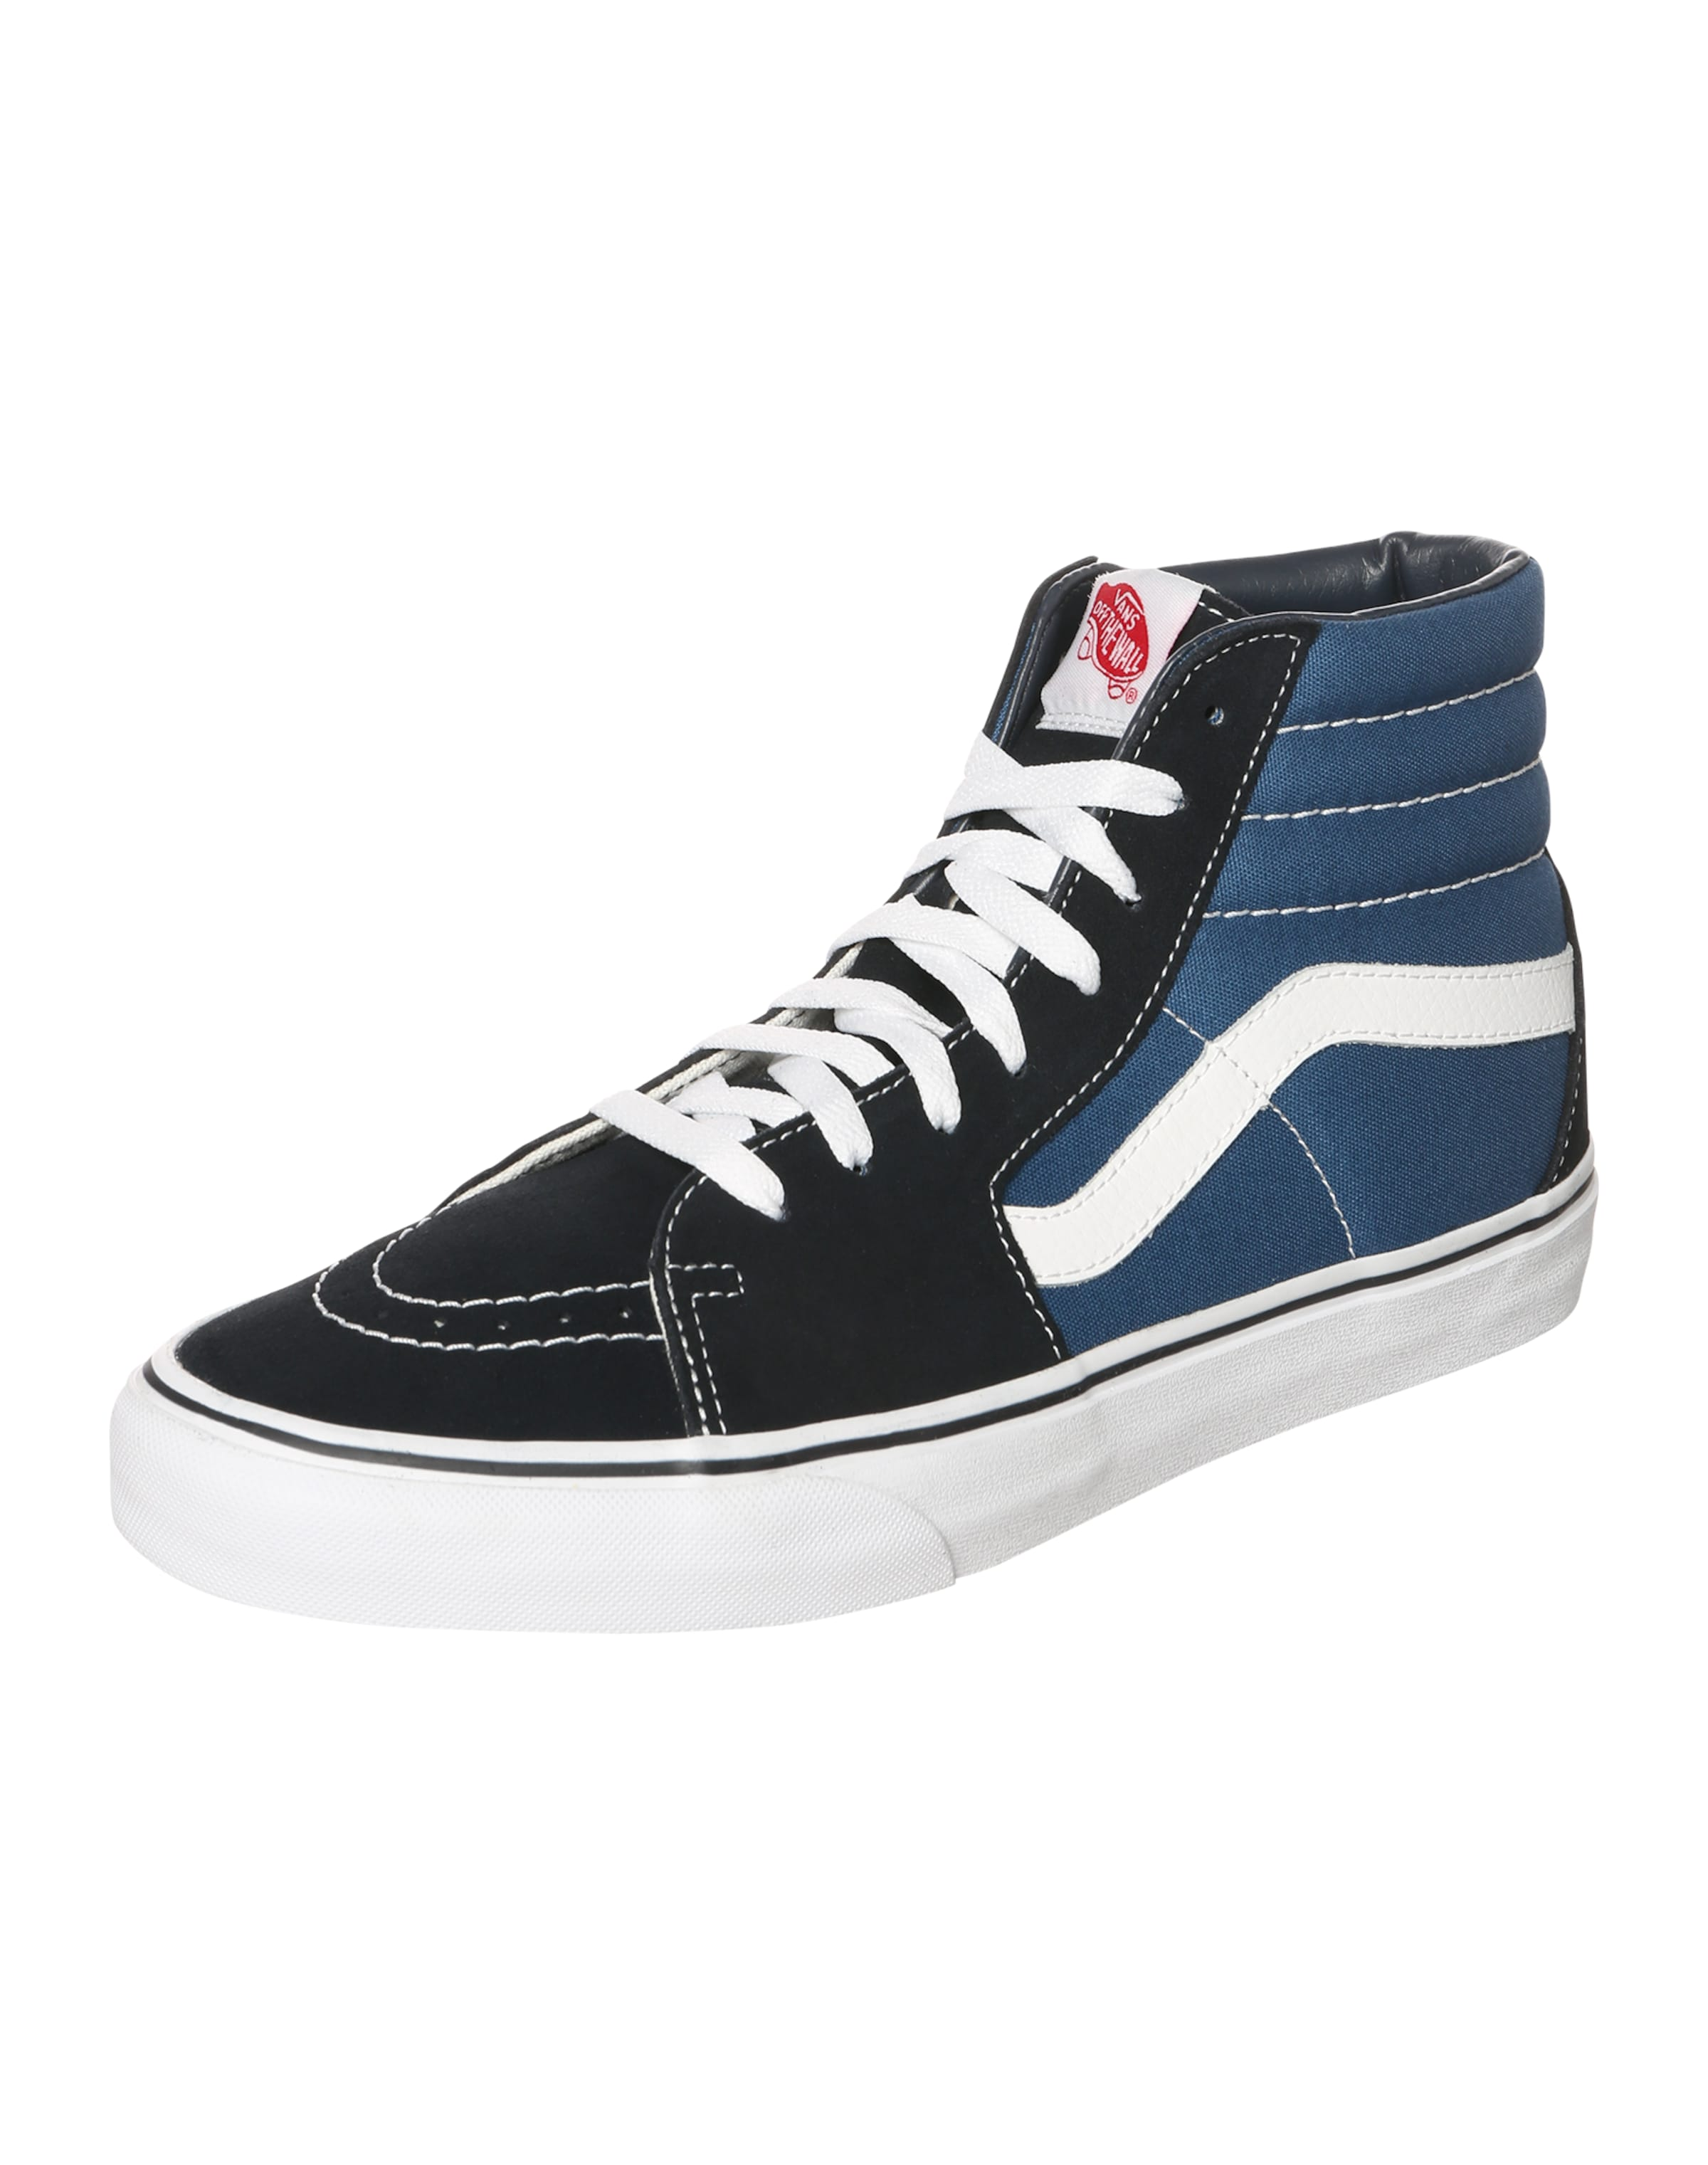 SchwarzWeiß Top Vans Sneaker hi' In High 'sk8 QxrCBtshd